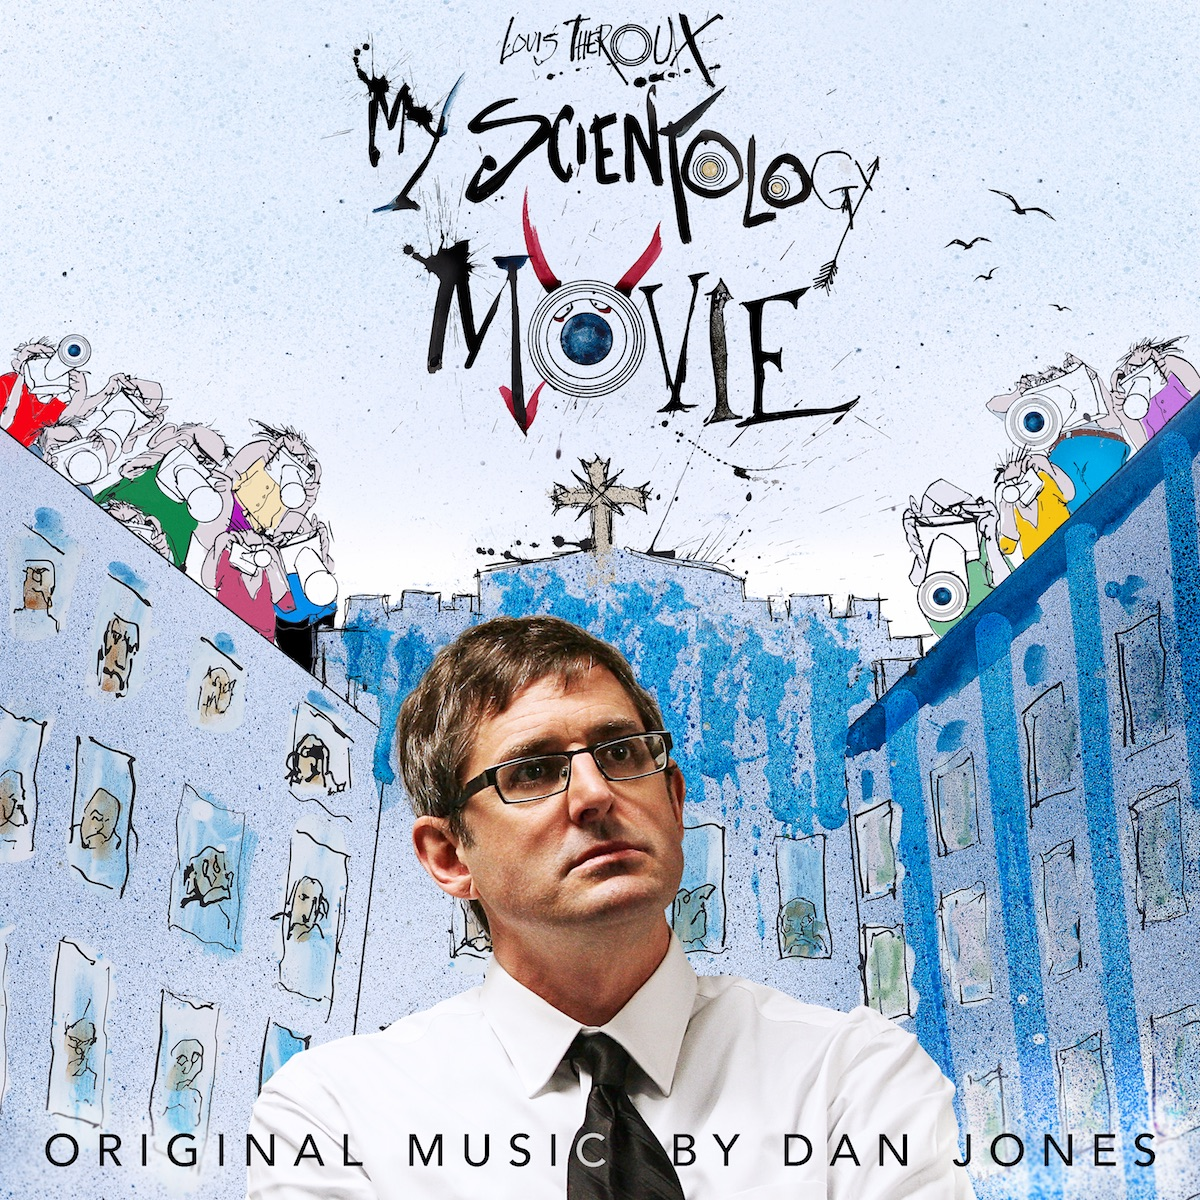 Louis Theroux: My Scientology Movie Soundtrack